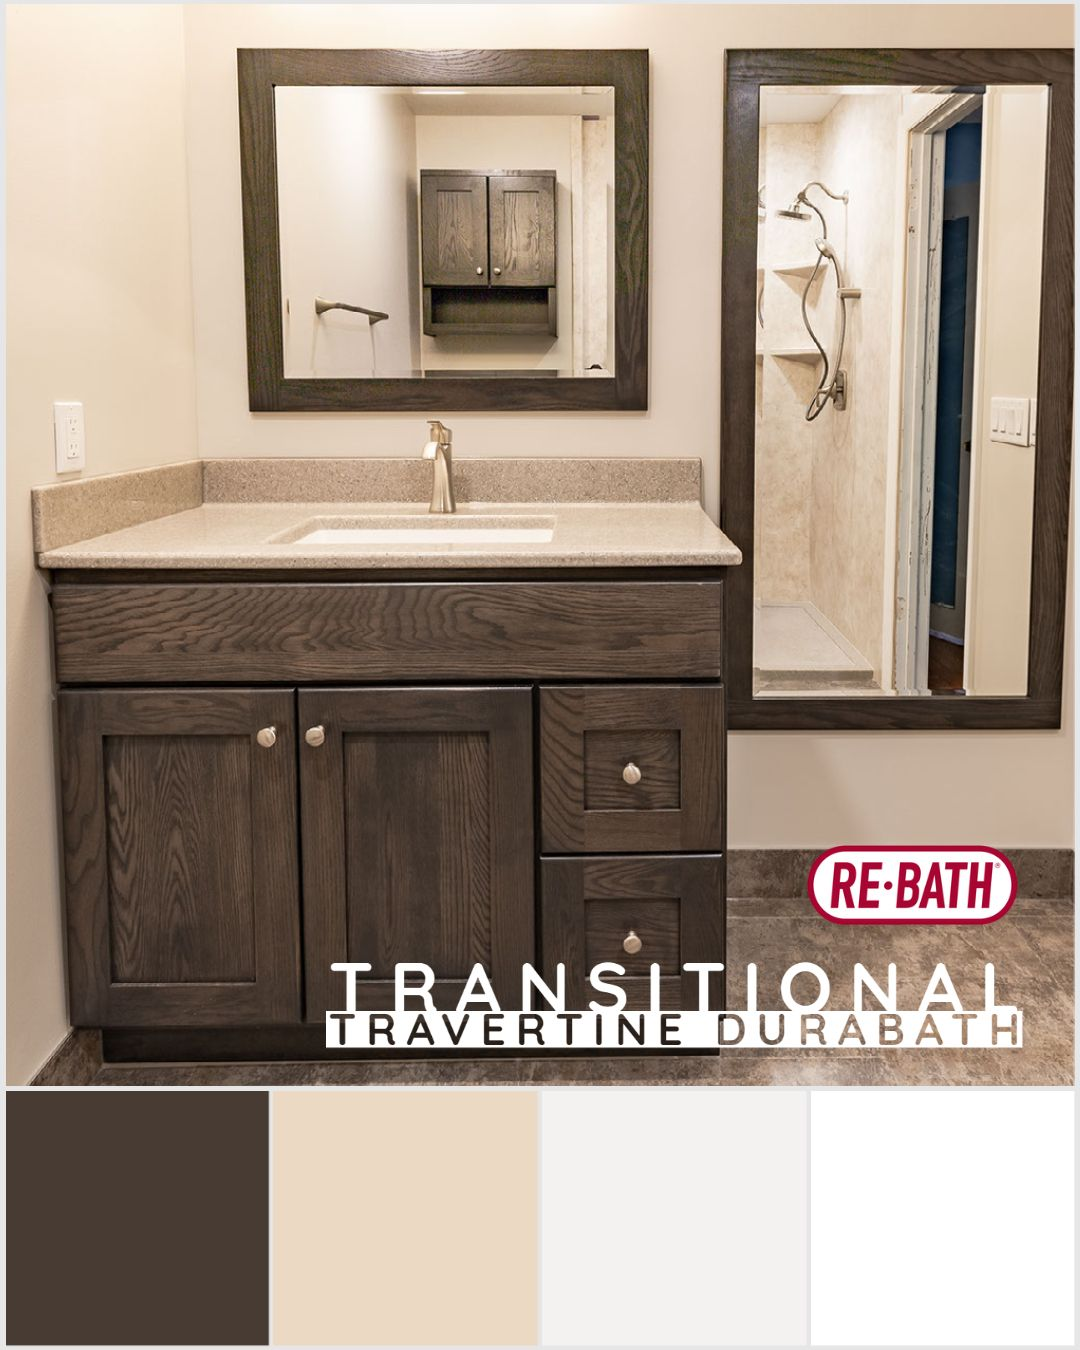 You Do Not Need A Crazy Bold Design For Your Bathroom To Make A Statement This Small Transitiona Bathroom Fixtures Brushed Nickel Bathroom Bathrooms Remodel